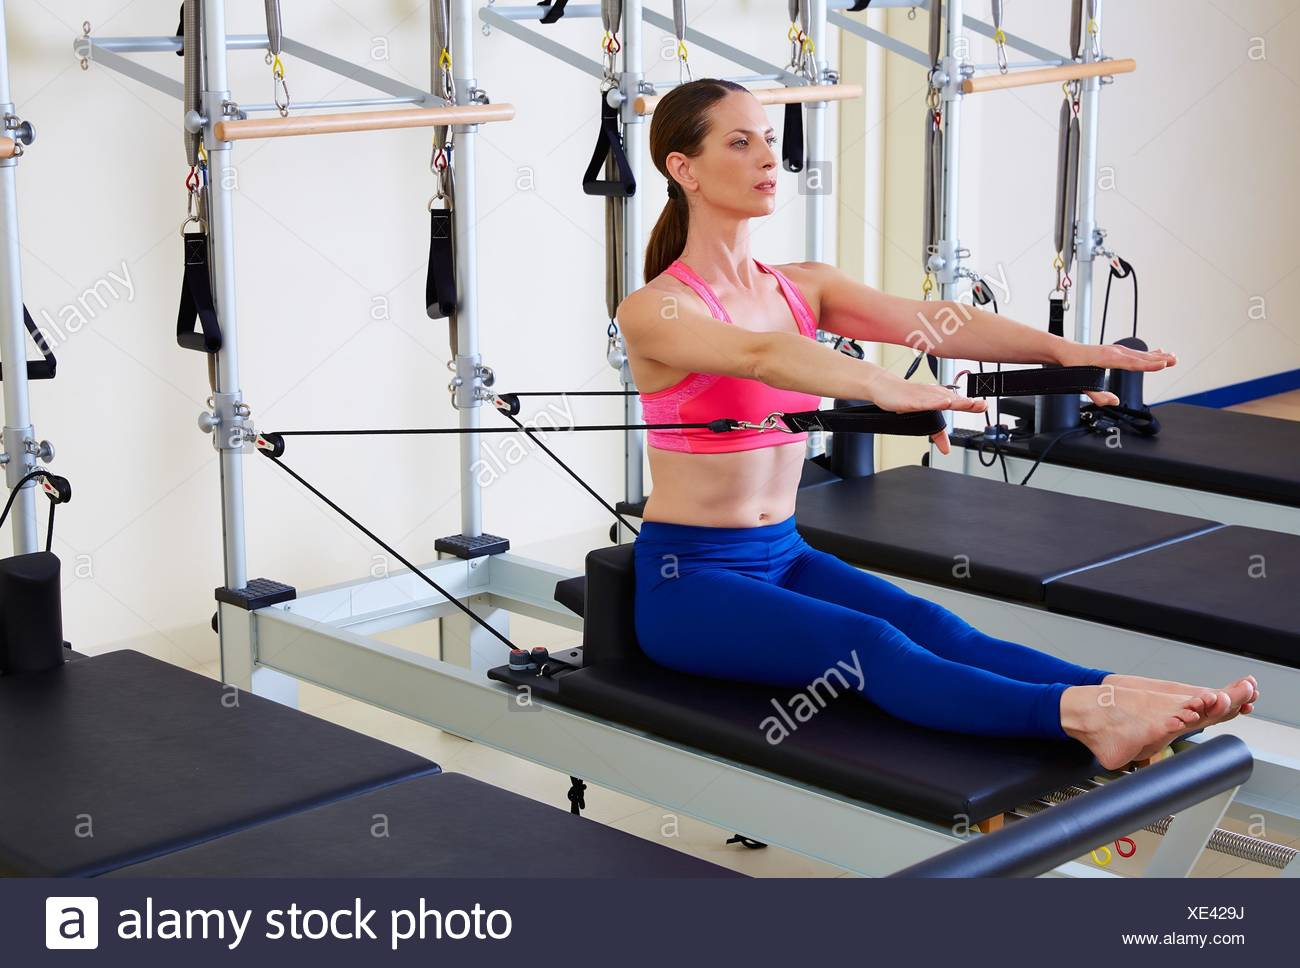 Pilates reformer woman stomach massage flat exercise workout at gym. - Stock Image